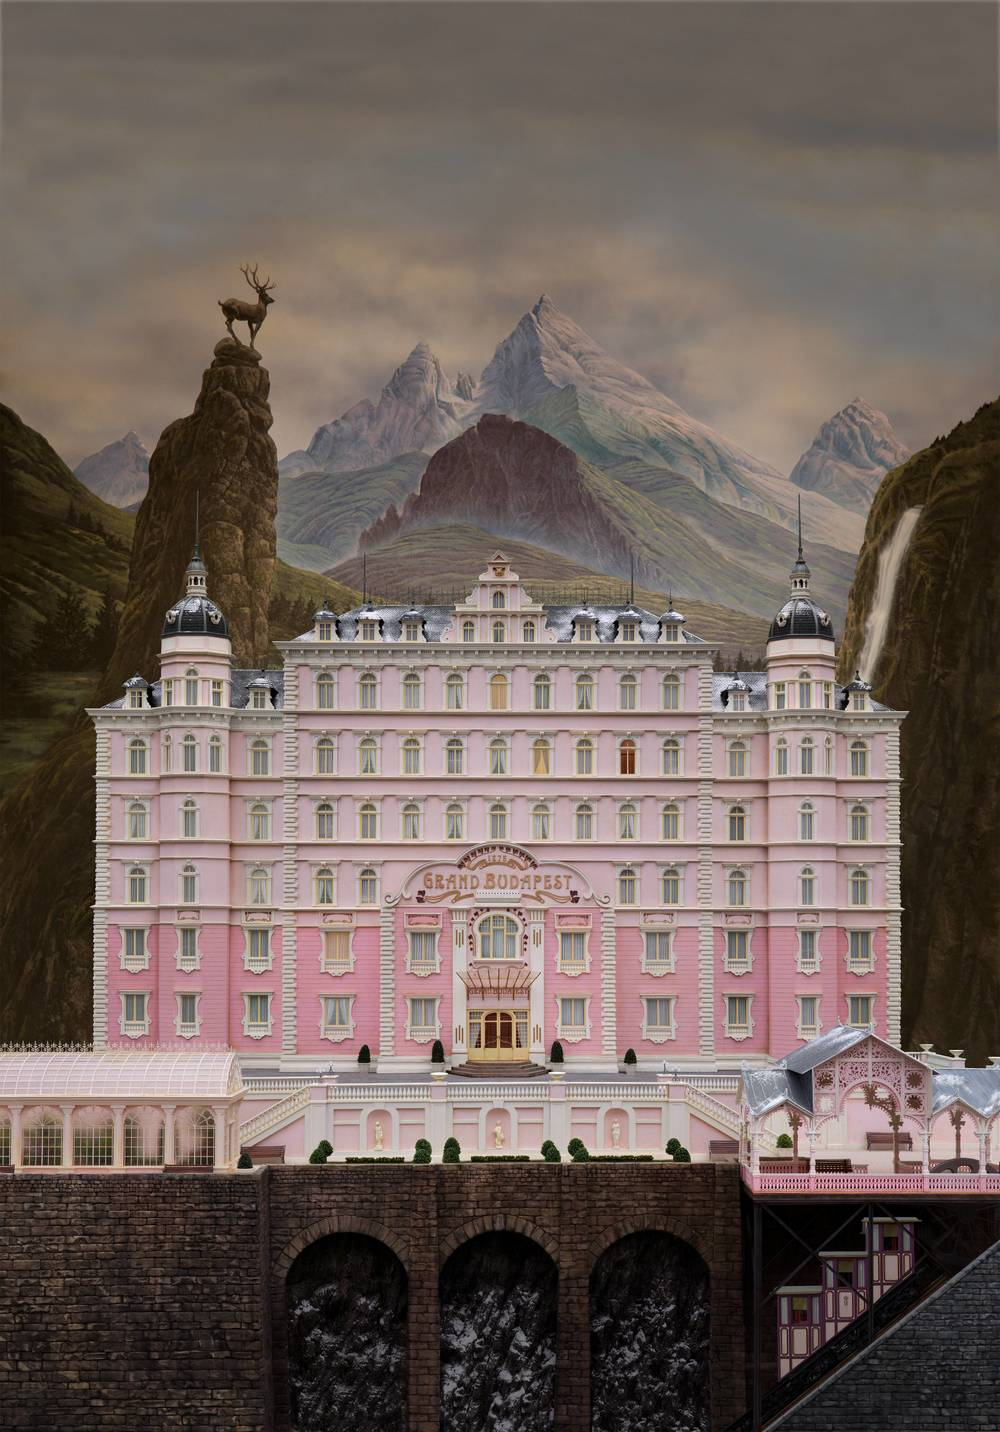 Hotel Grand Budapest (2014) - Wes Anderson